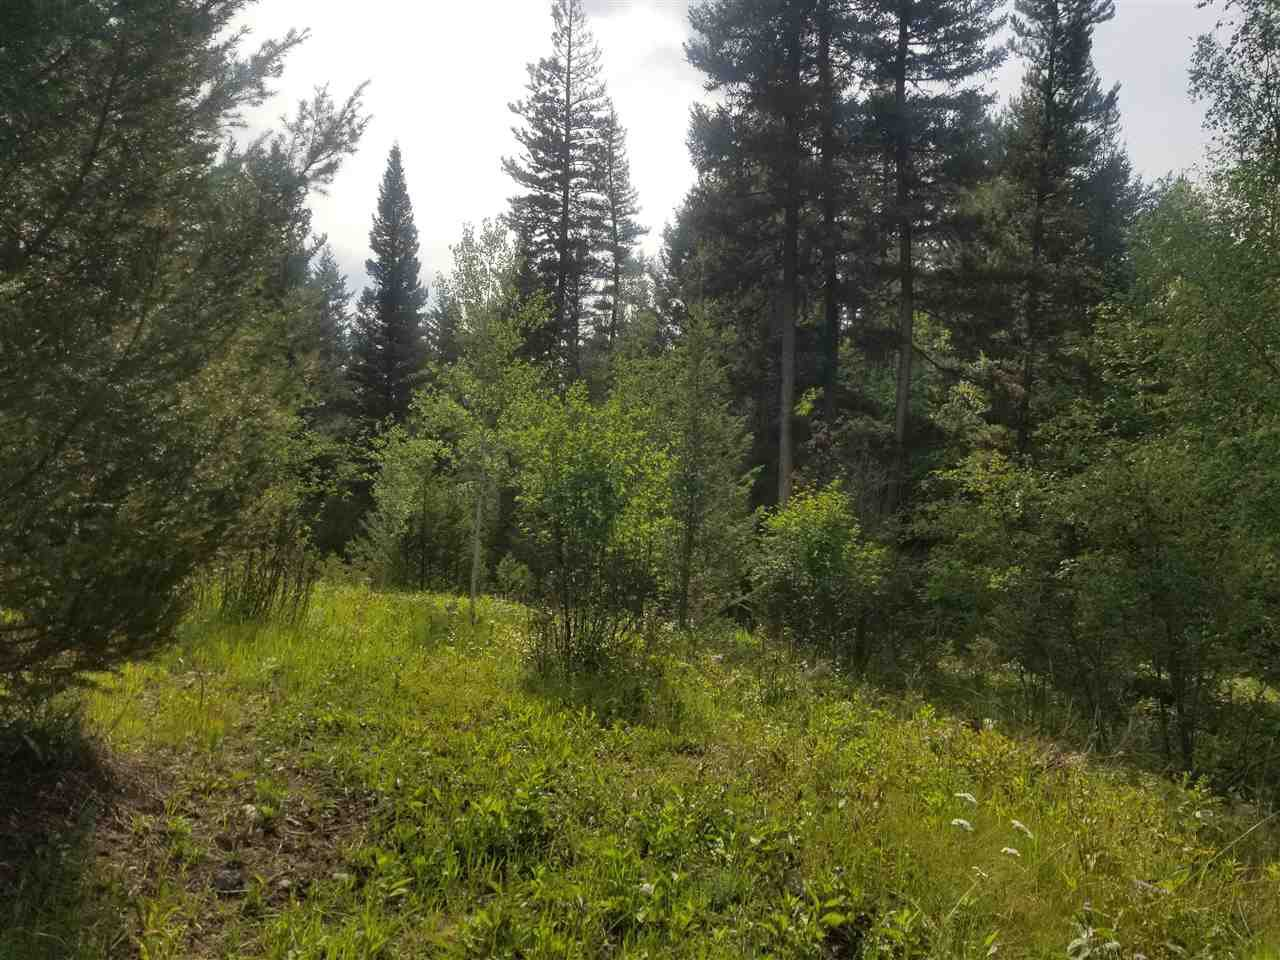 """Photo 2: Photos: 4863 STEWART Road in 108 Mile Ranch: 108 Ranch Land for sale in """"108 MILE RANCH"""" (100 Mile House (Zone 10))  : MLS®# R2391163"""